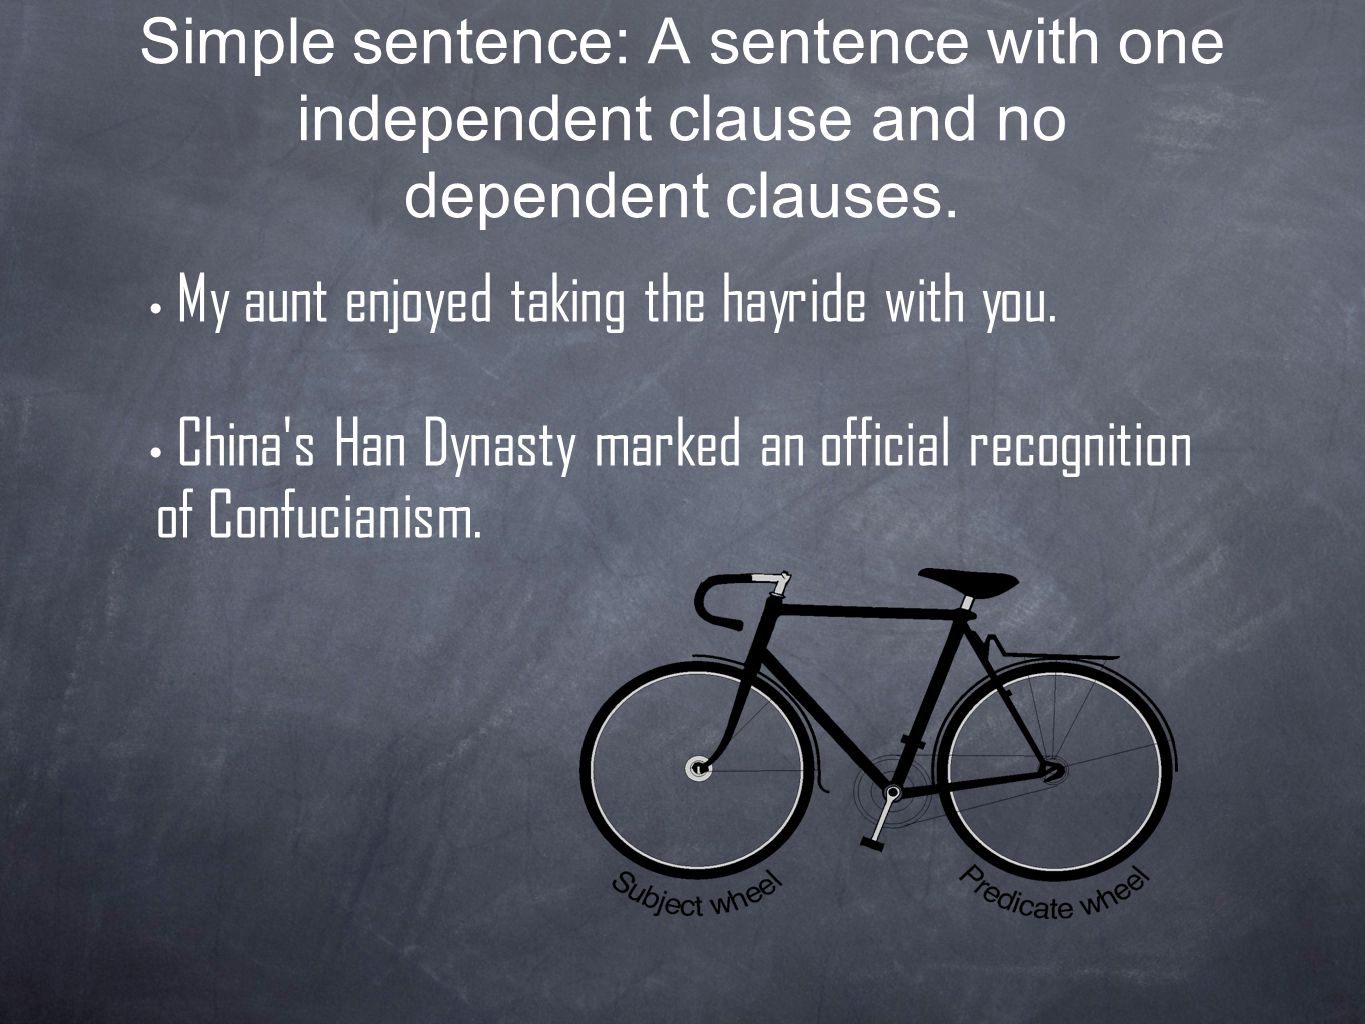 Simple sentence: A sentence with one independent clause and no dependent clauses.